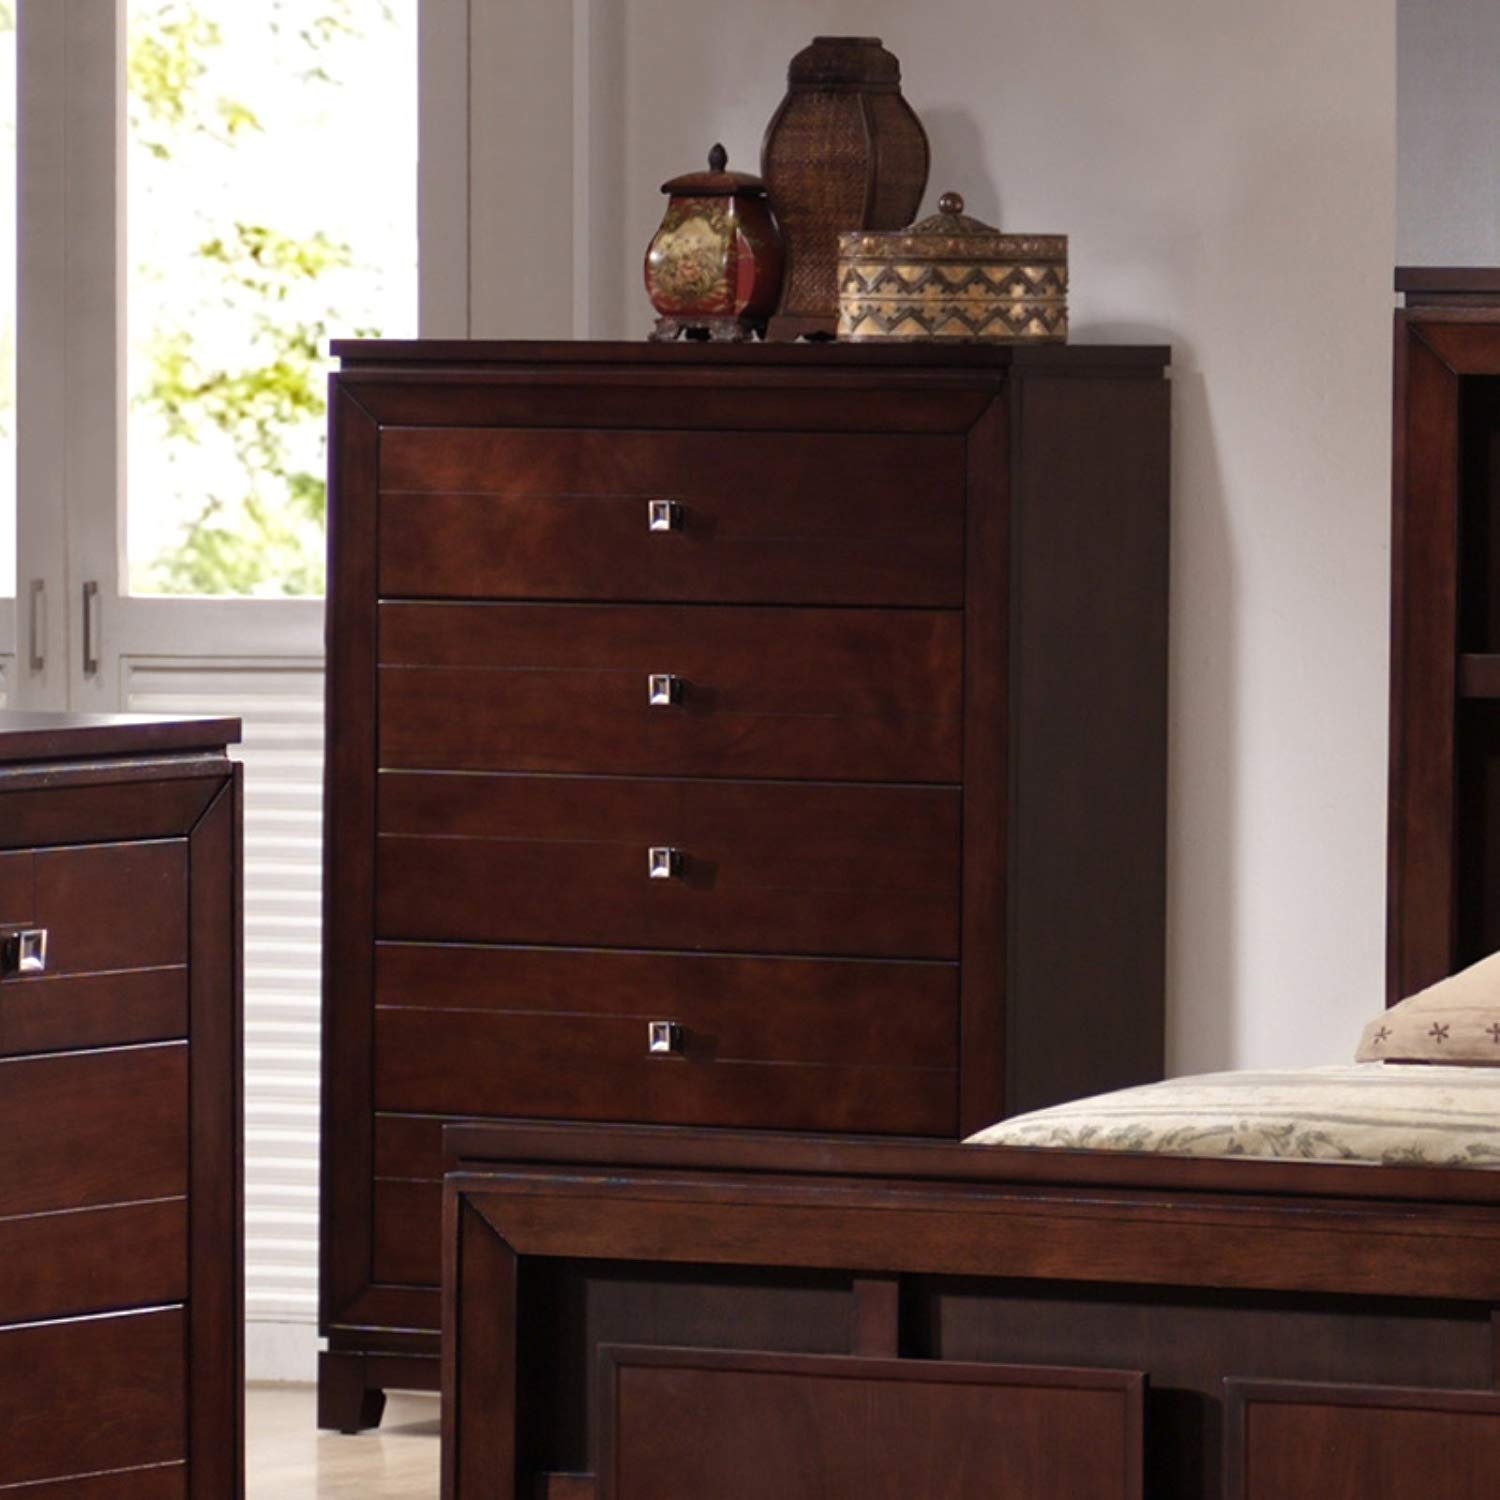 5 Drawer Chest, Polished, Metropolitan Style, Highlighted by Solid and Durable Hardwood Construction, French and English Dovetails, Includes a Hidden, Felt-Lined Sixth Drawer, Warm Cherry